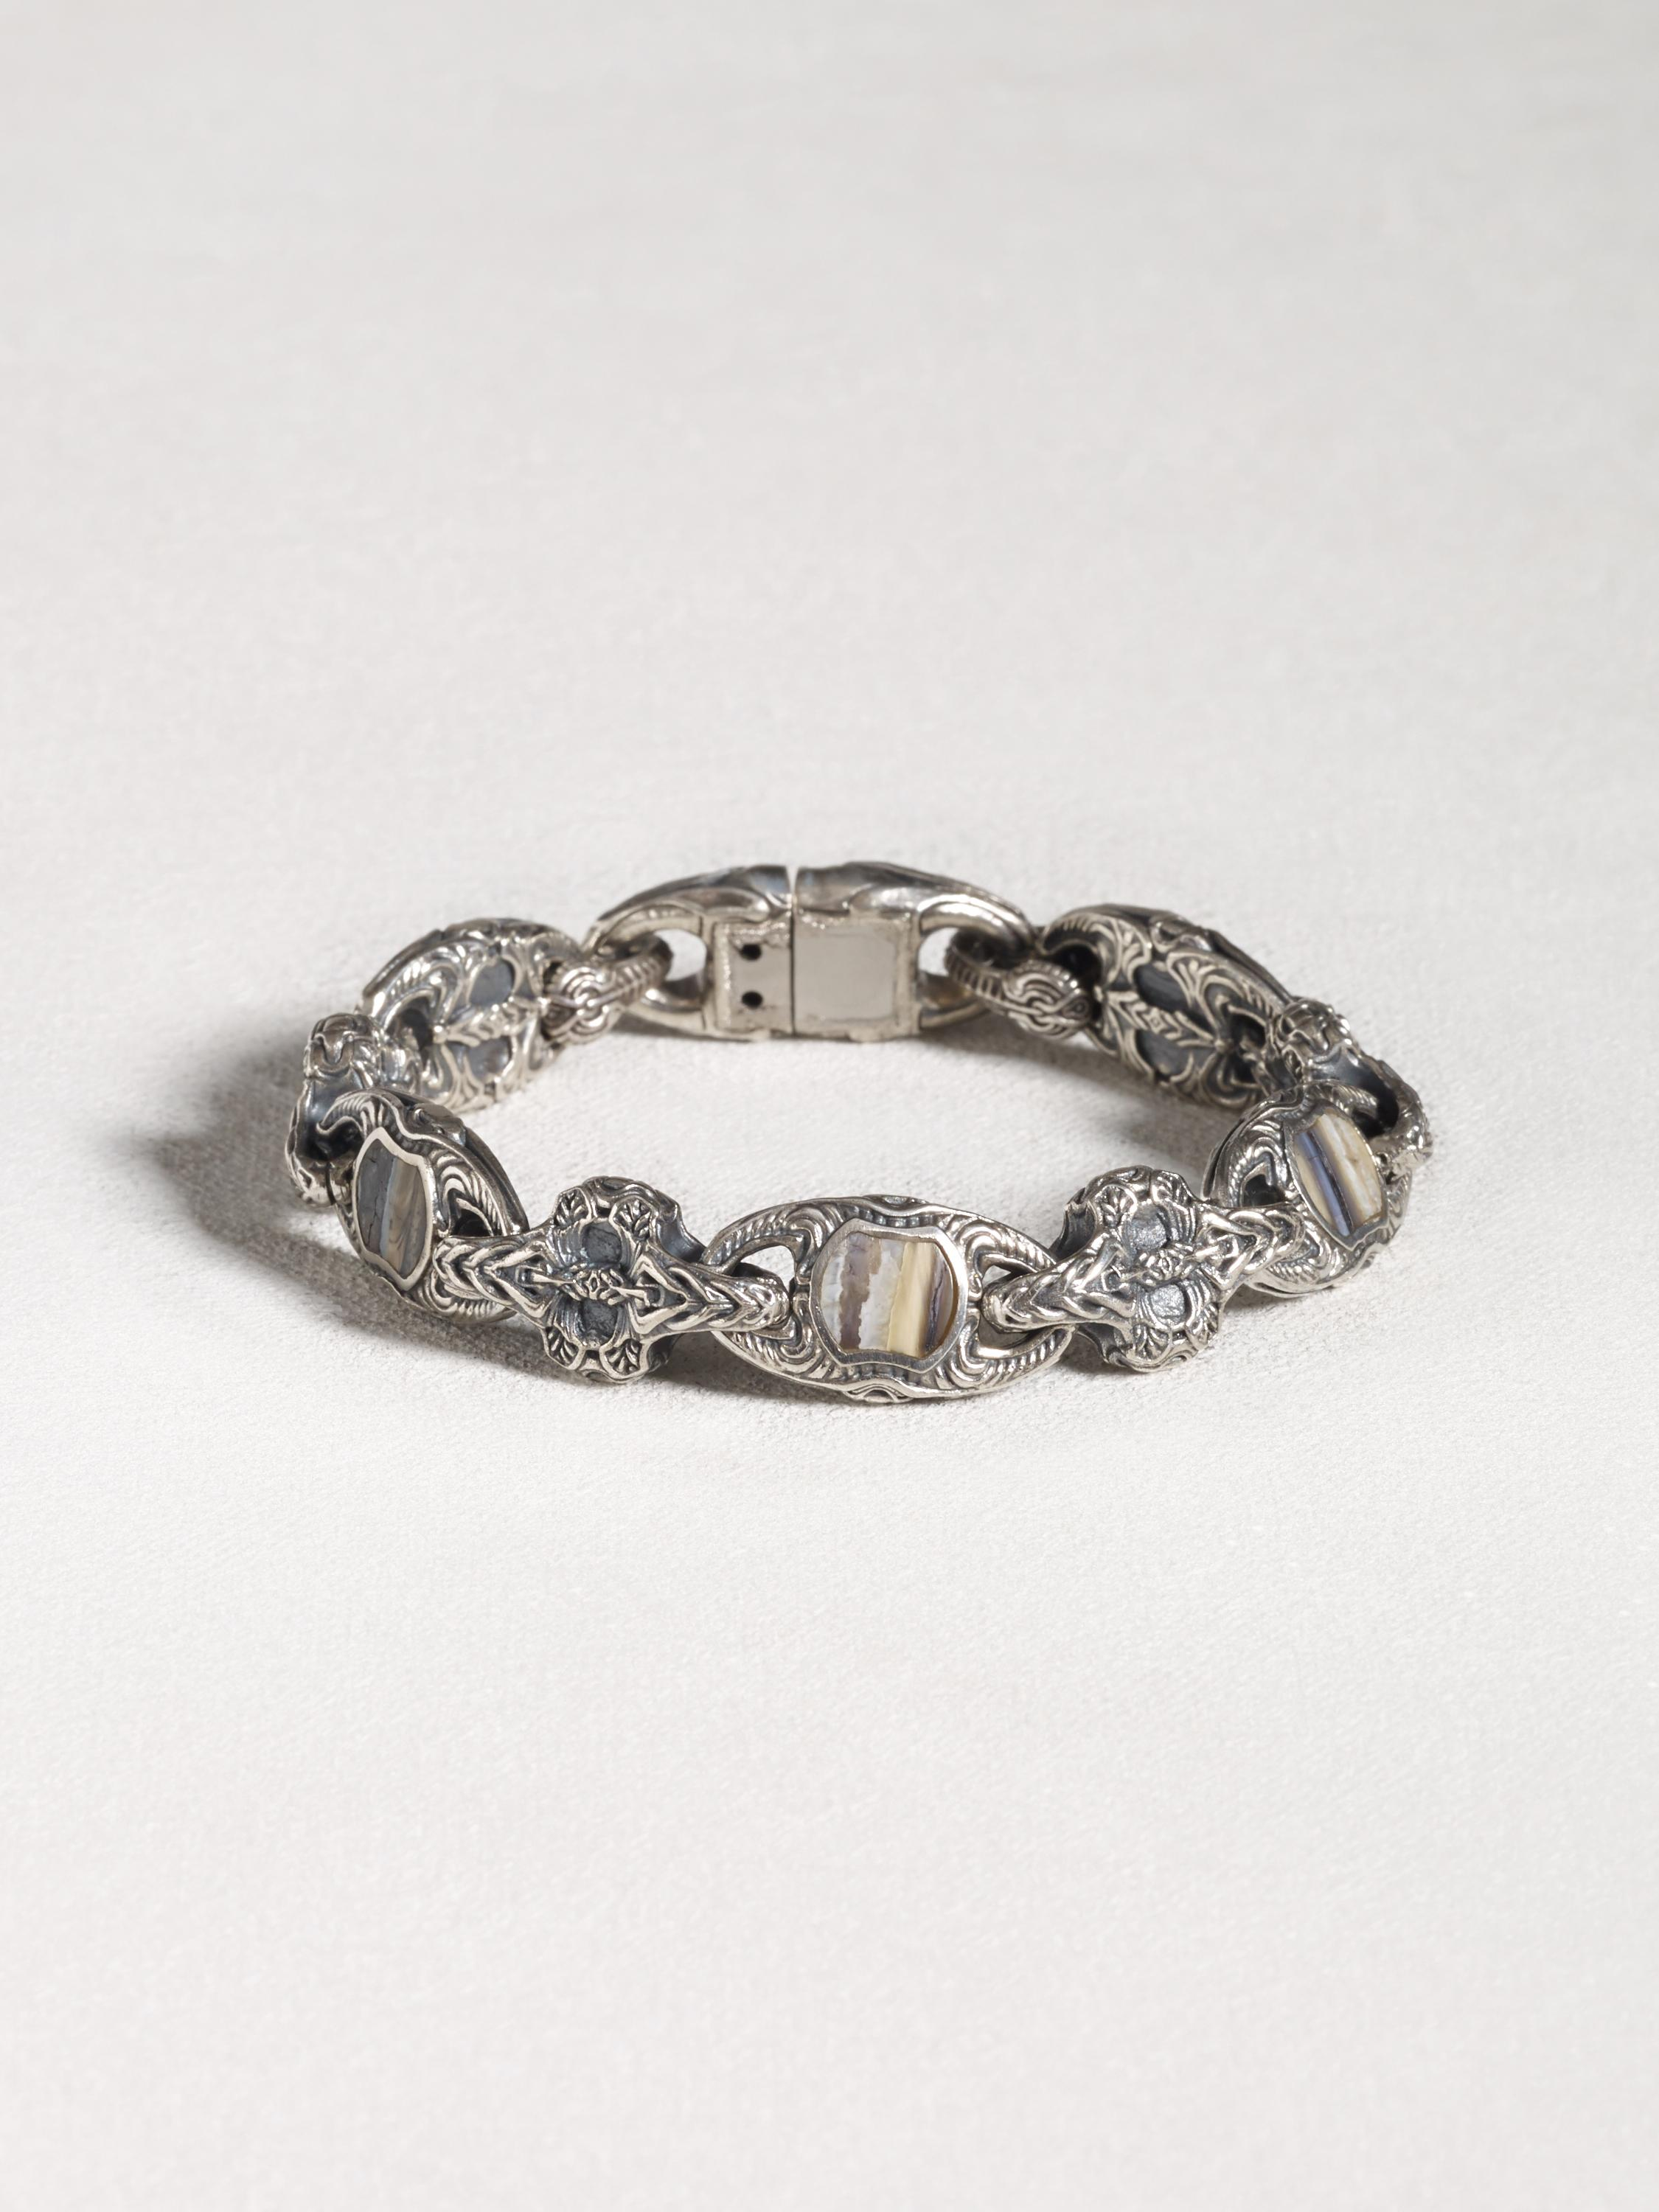 Sterling Silver Wooly Mammoth Fossil Inlay Bracelet - John